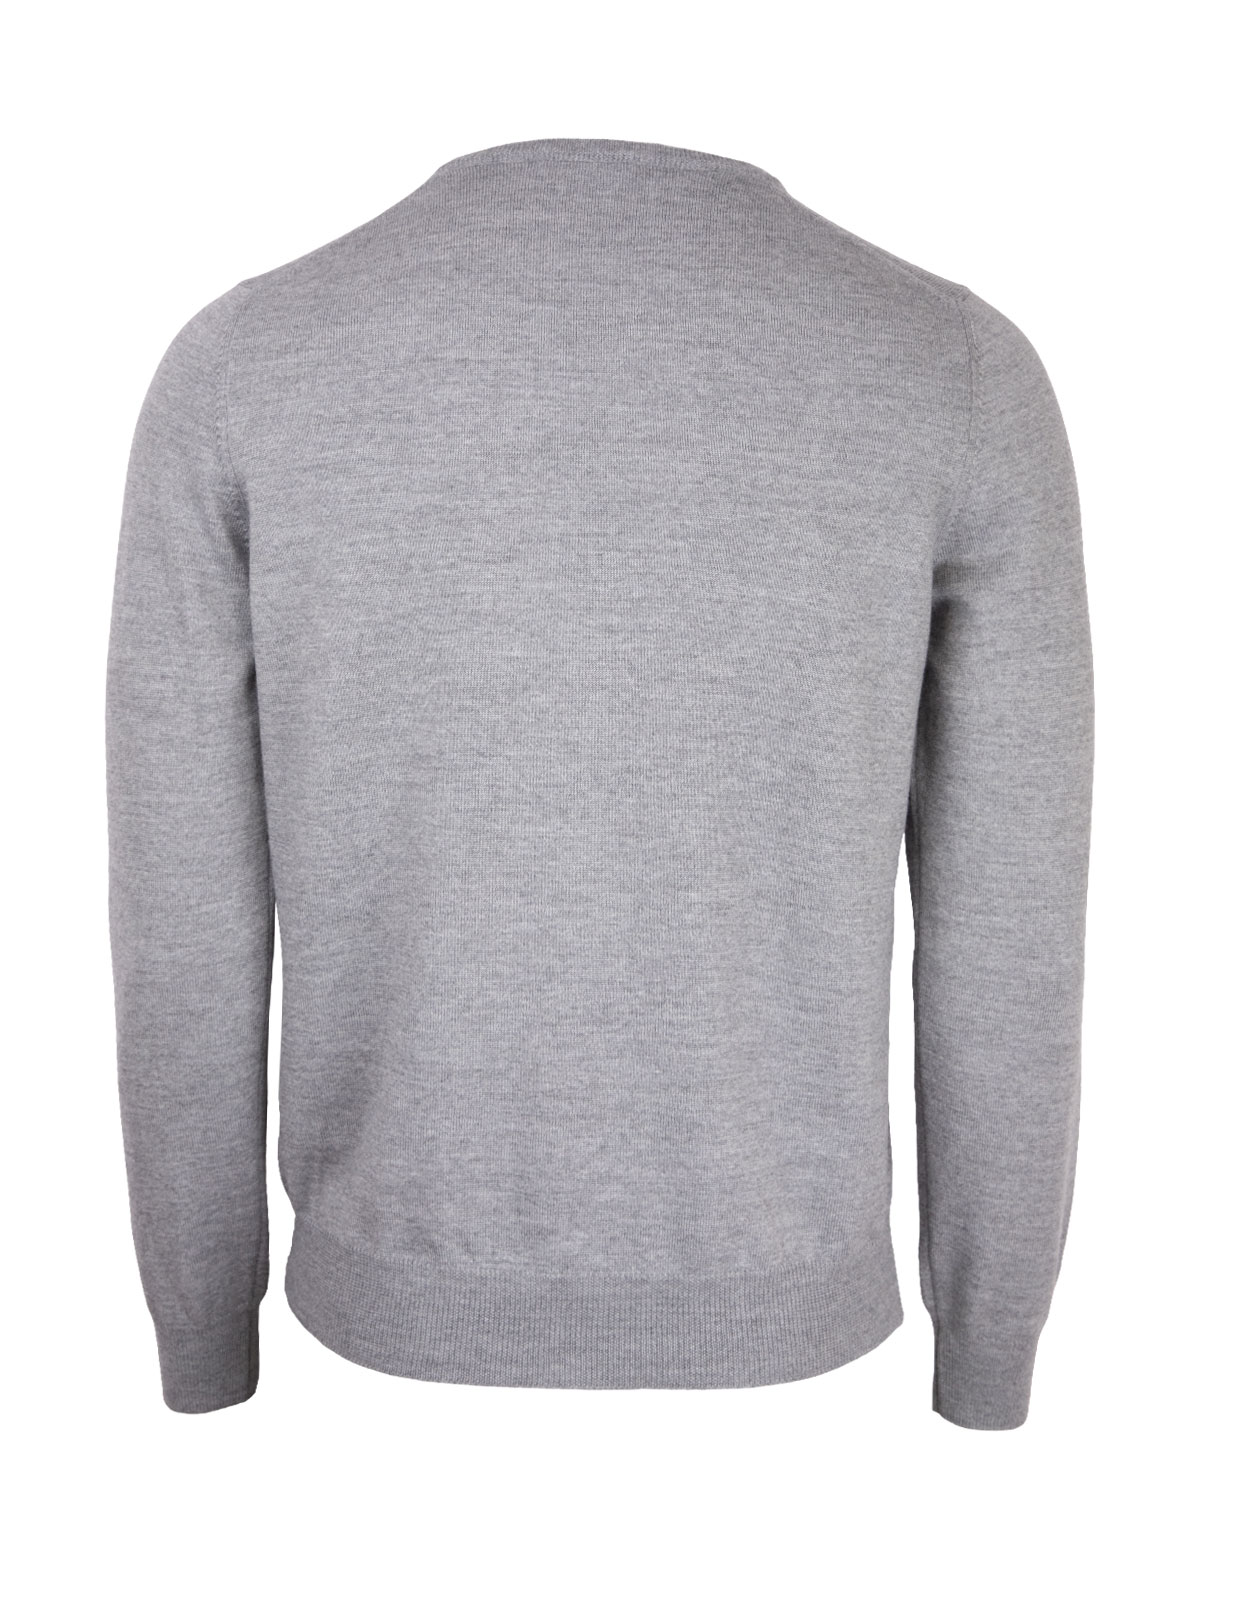 Fashion Fit Crew Neck Merino Pullover L.Grey Melange